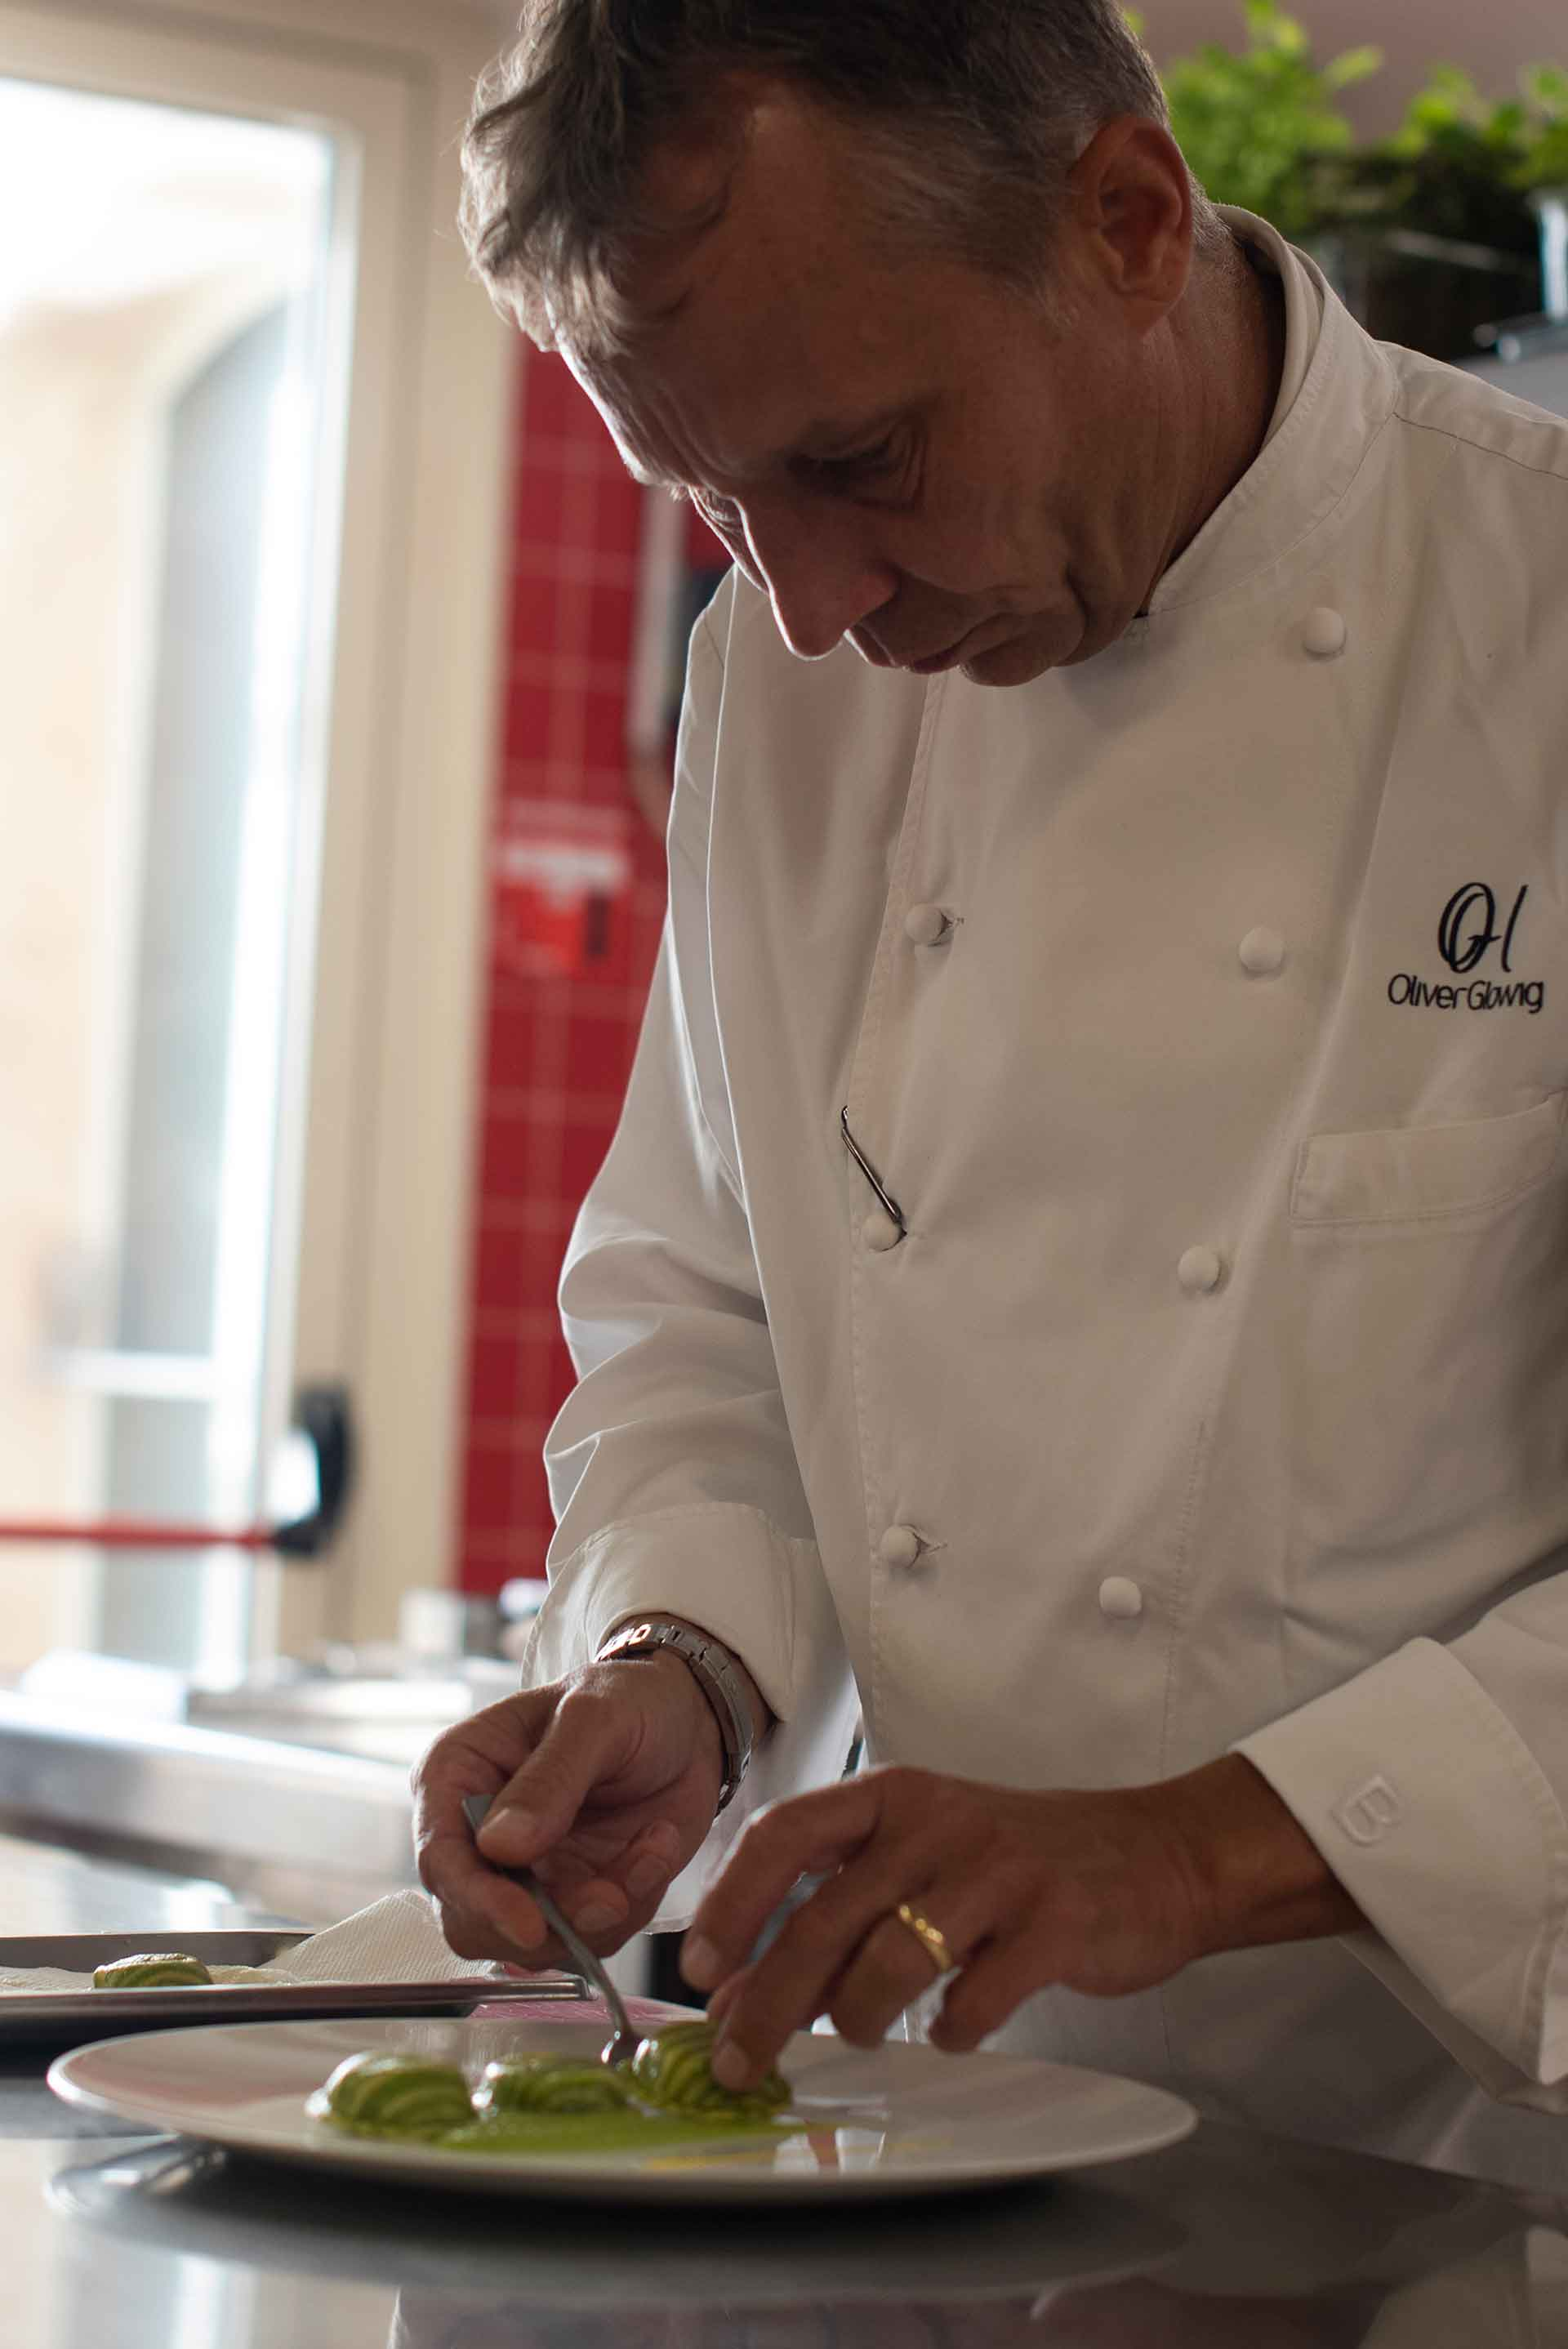 officina-visiva-ale-&-pepe-chef-michelin-stellato-oliver-glowig-16